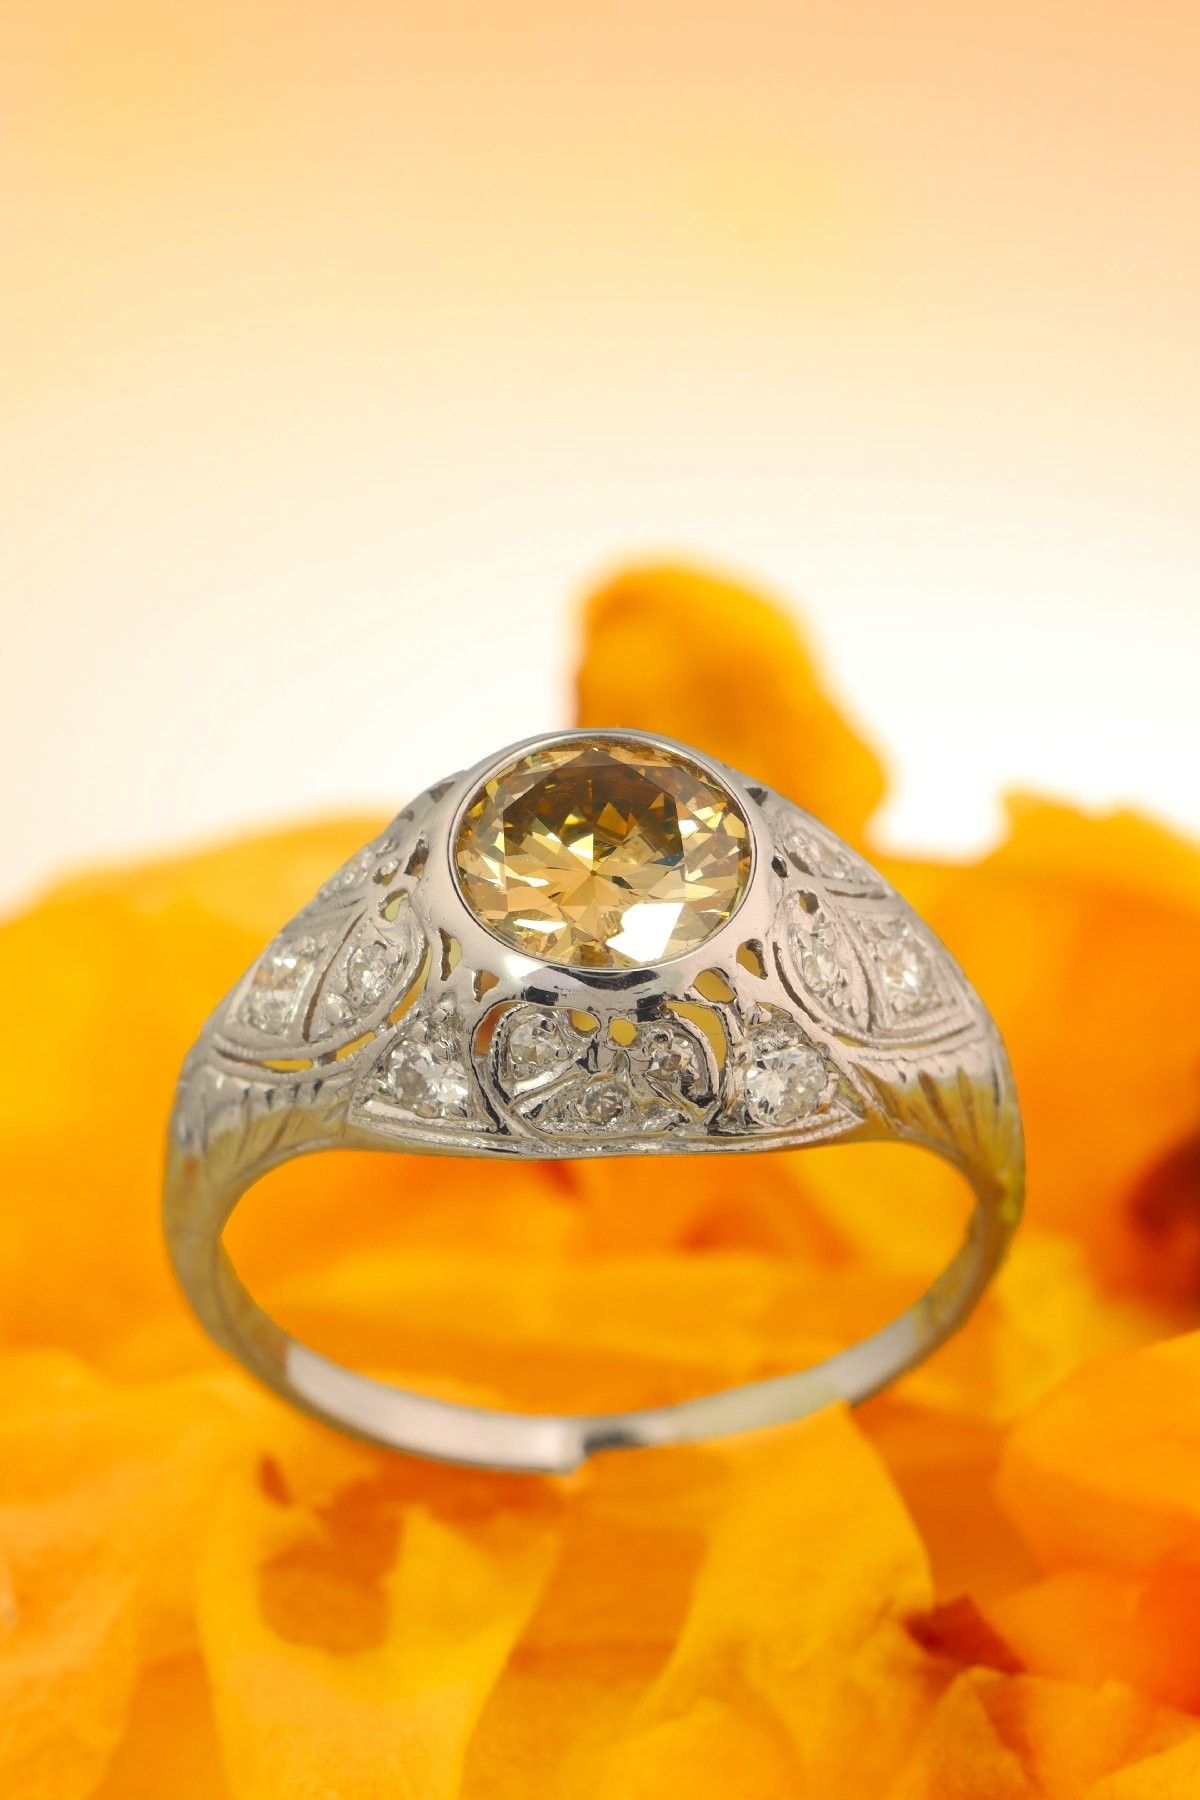 Click the picture to get to see this Vintage Fifties Art Deco engagement ring with natural fancy colour brilliant